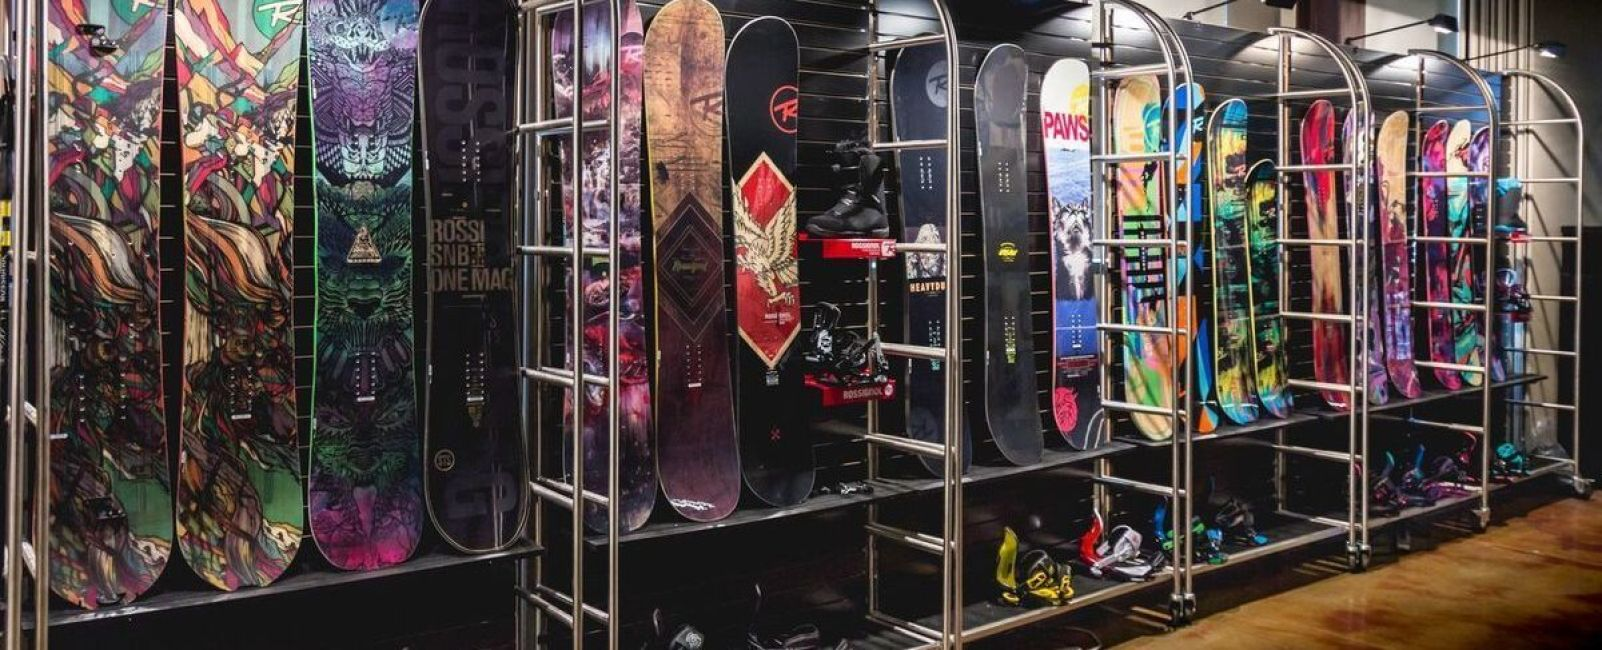 Five Utah-Based Snowboard Companies